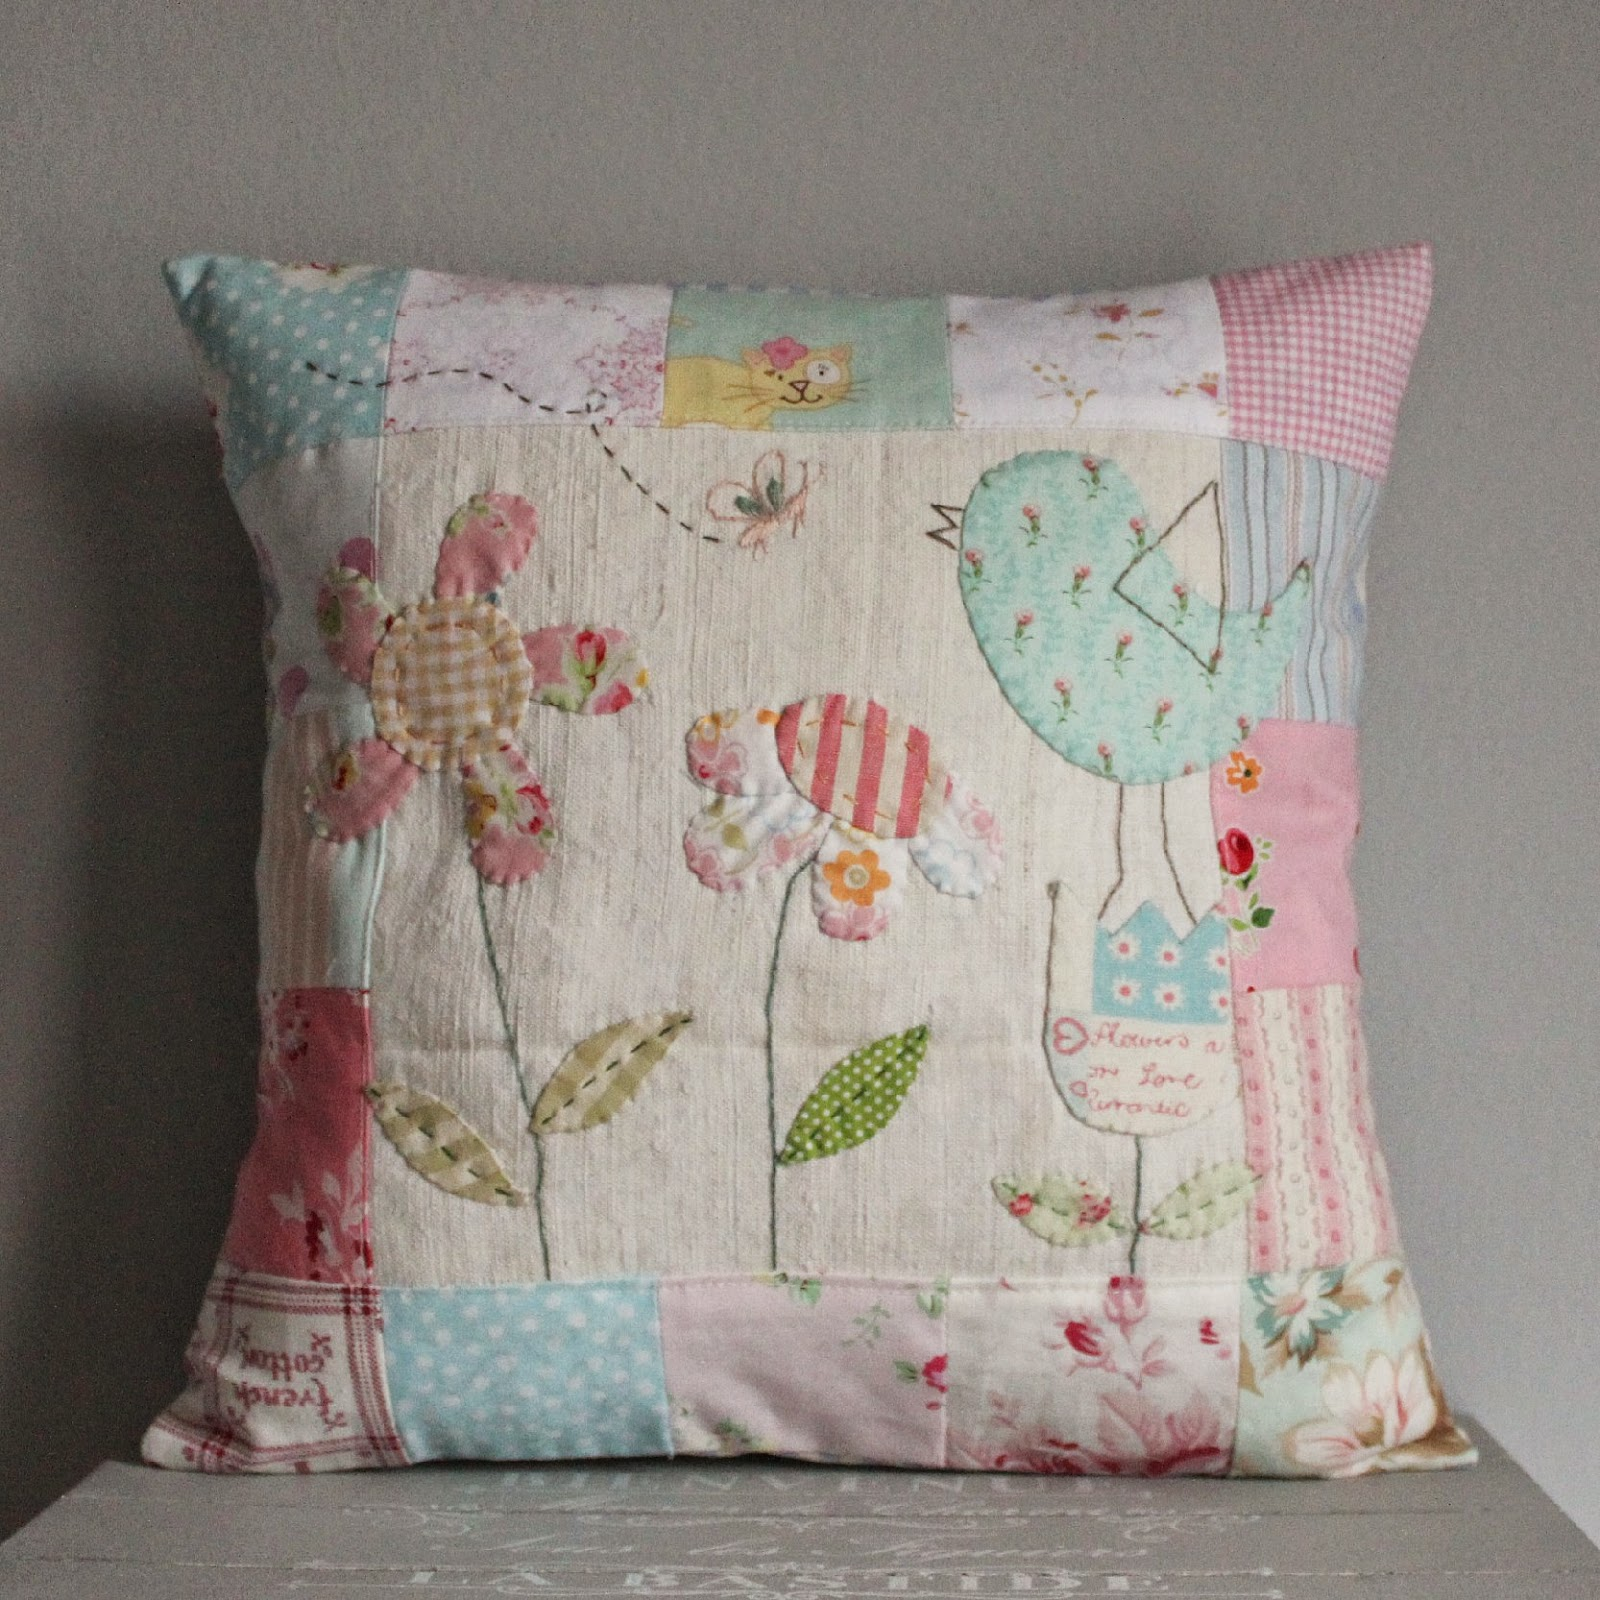 Roxy Creations Love Making Pillows